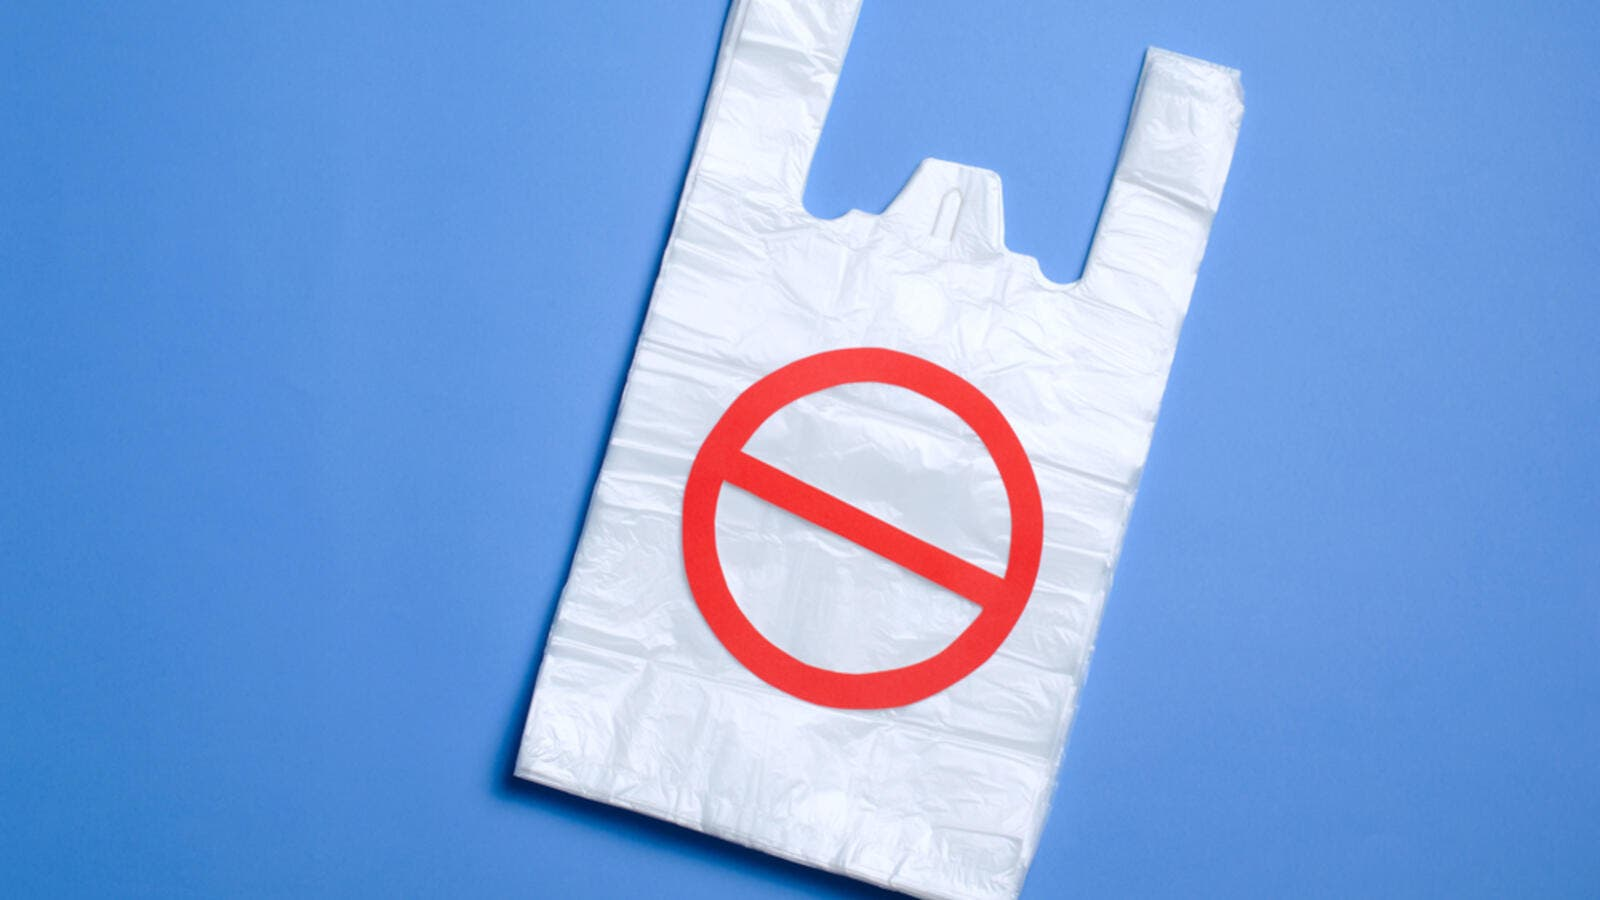 The order will regulate and phase out the use of plastic bags.